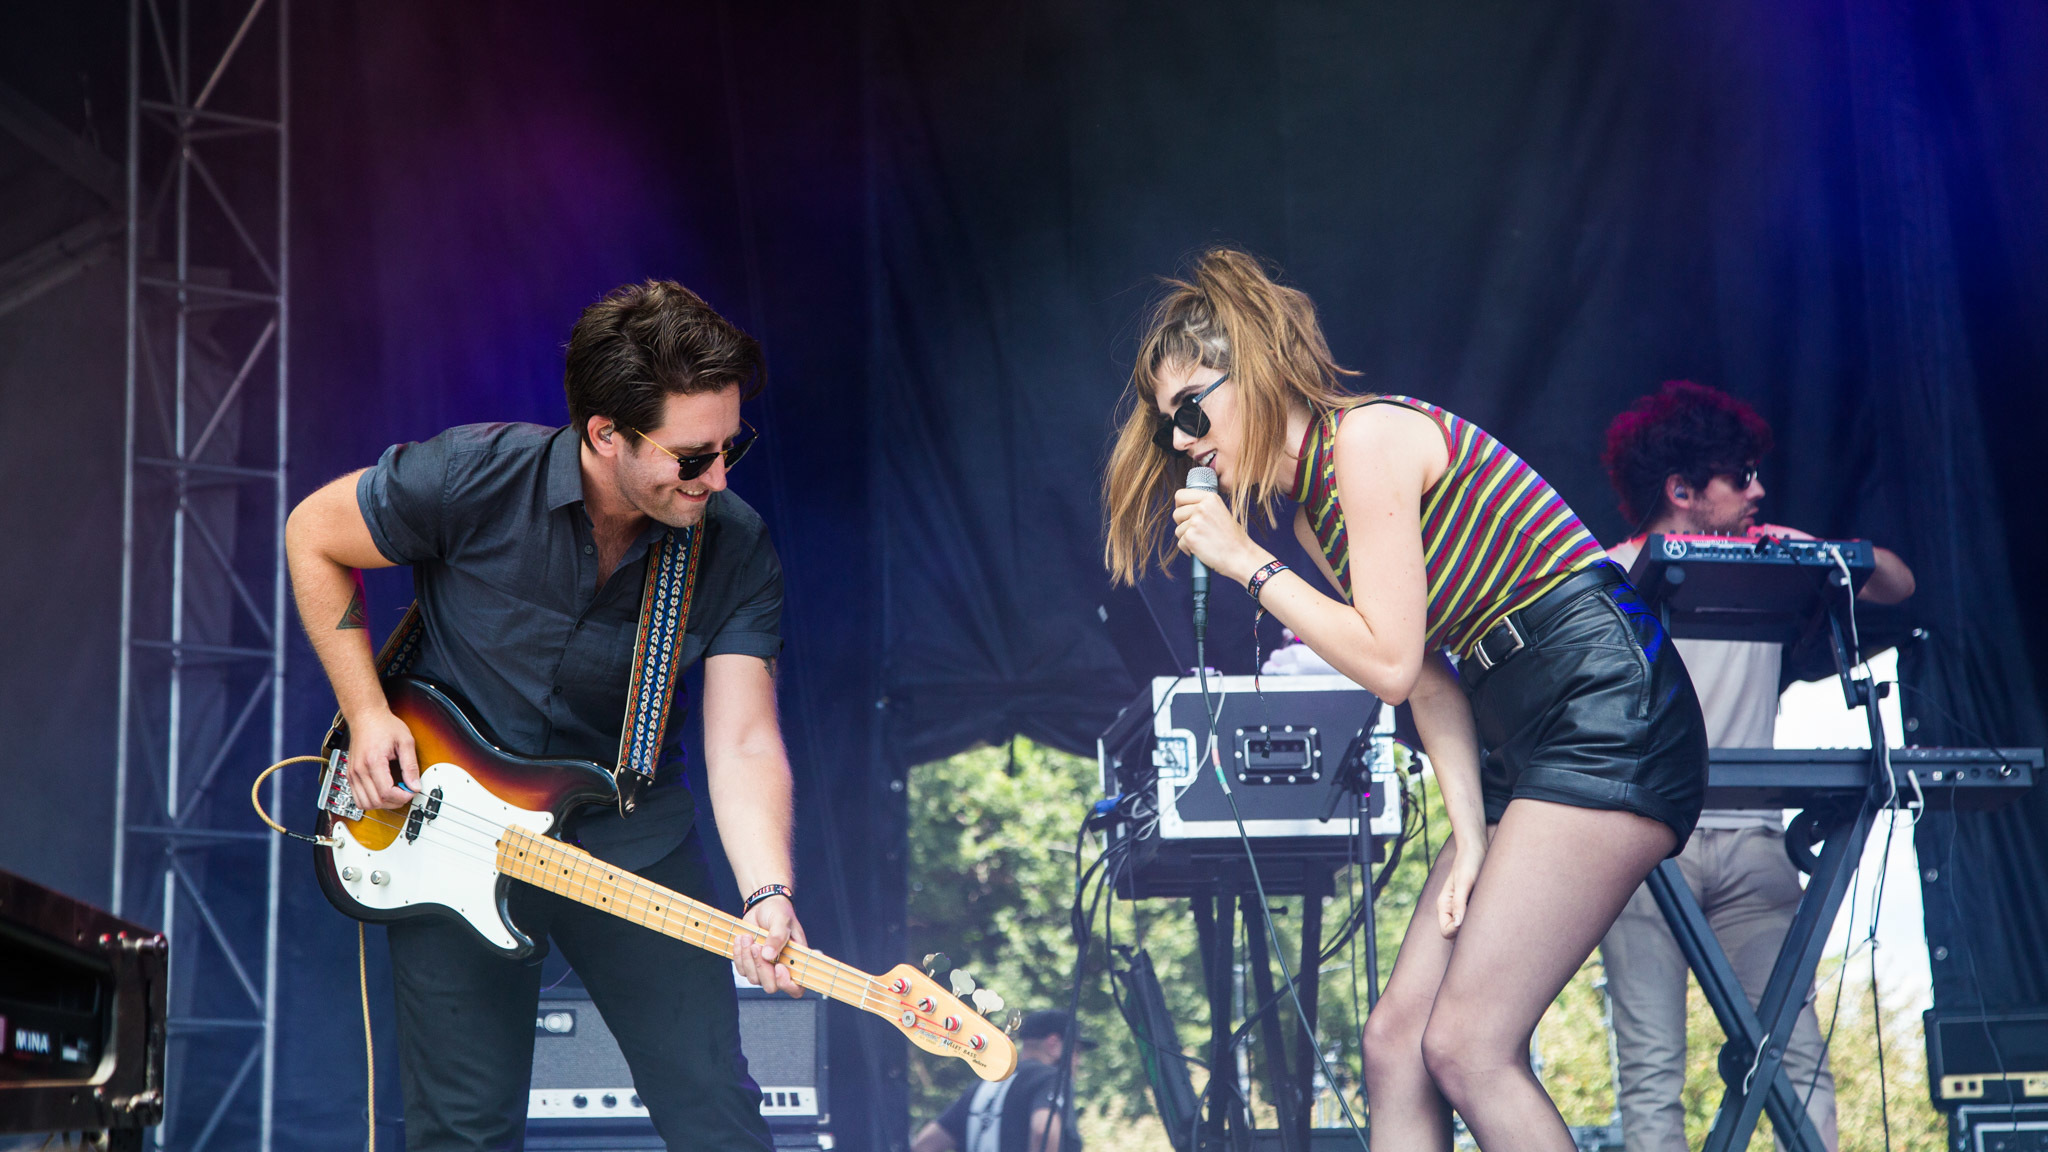 Ryn Weaver turned in a set in front of a crowd of thousands at Lollapalooza on August 1, 2015.